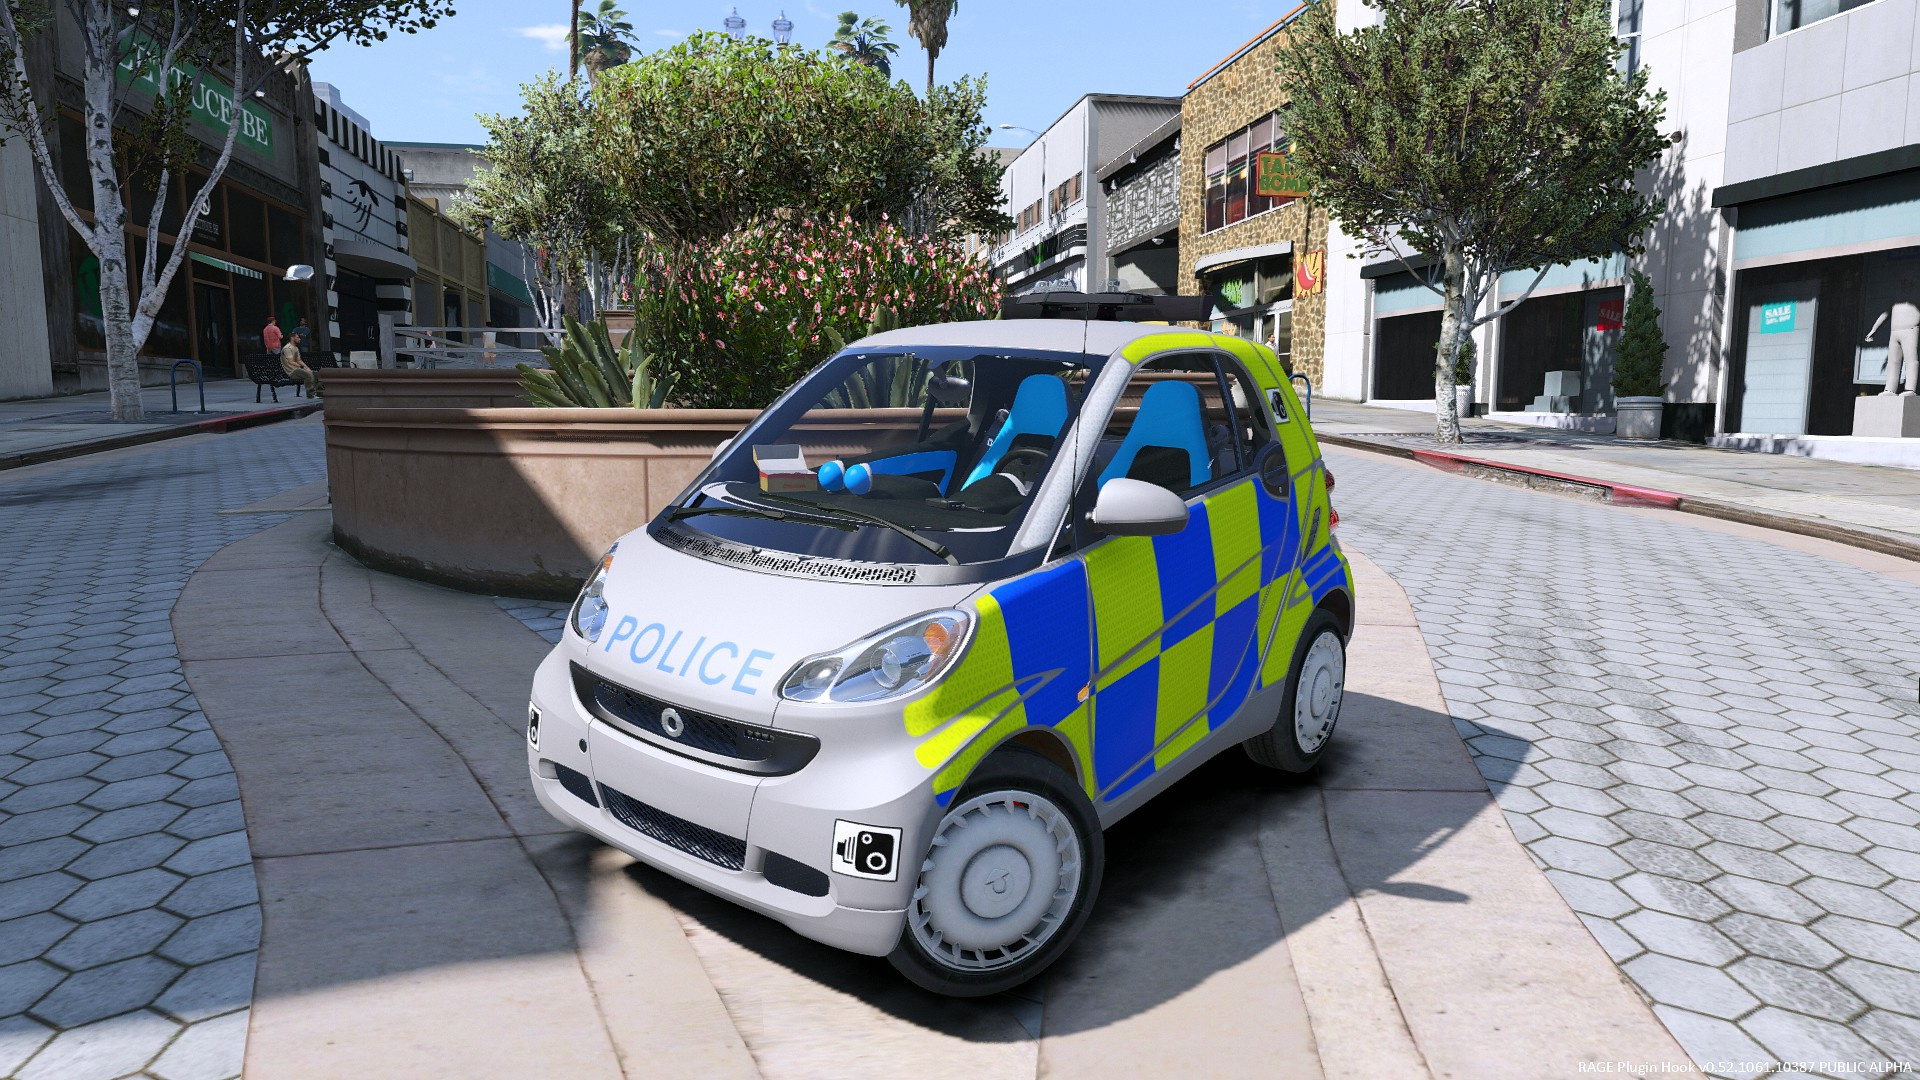 Various Uk Police Skins For Smart Car Mods Com